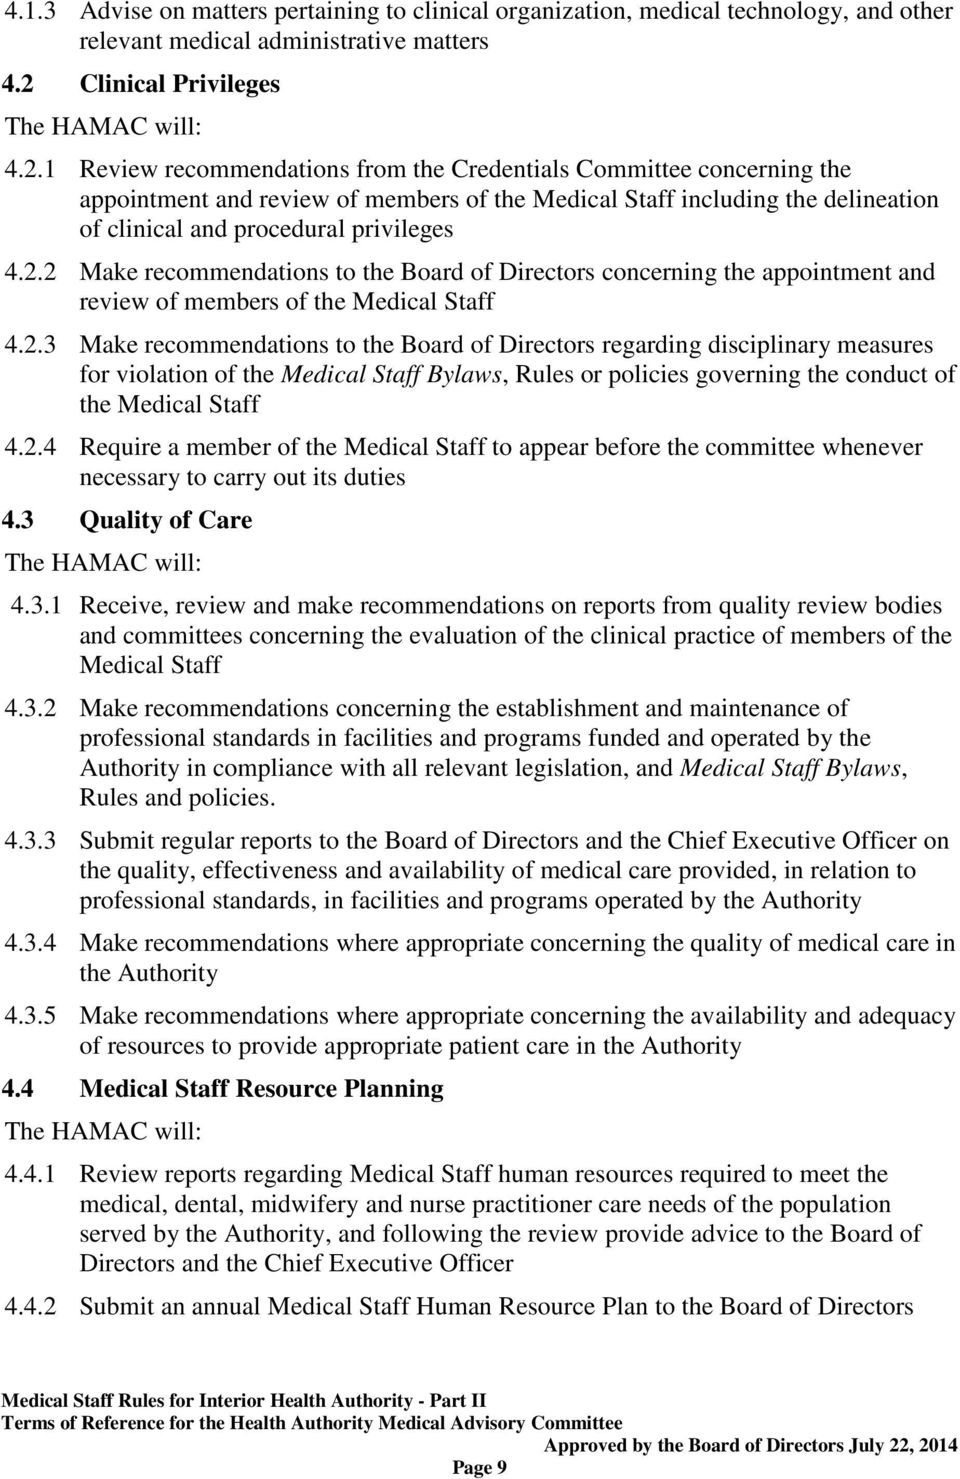 1 Review recommendations from the Credentials Committee concerning the appointment and review of members of the Medical Staff including the delineation of clinical and procedural privileges 4.2.